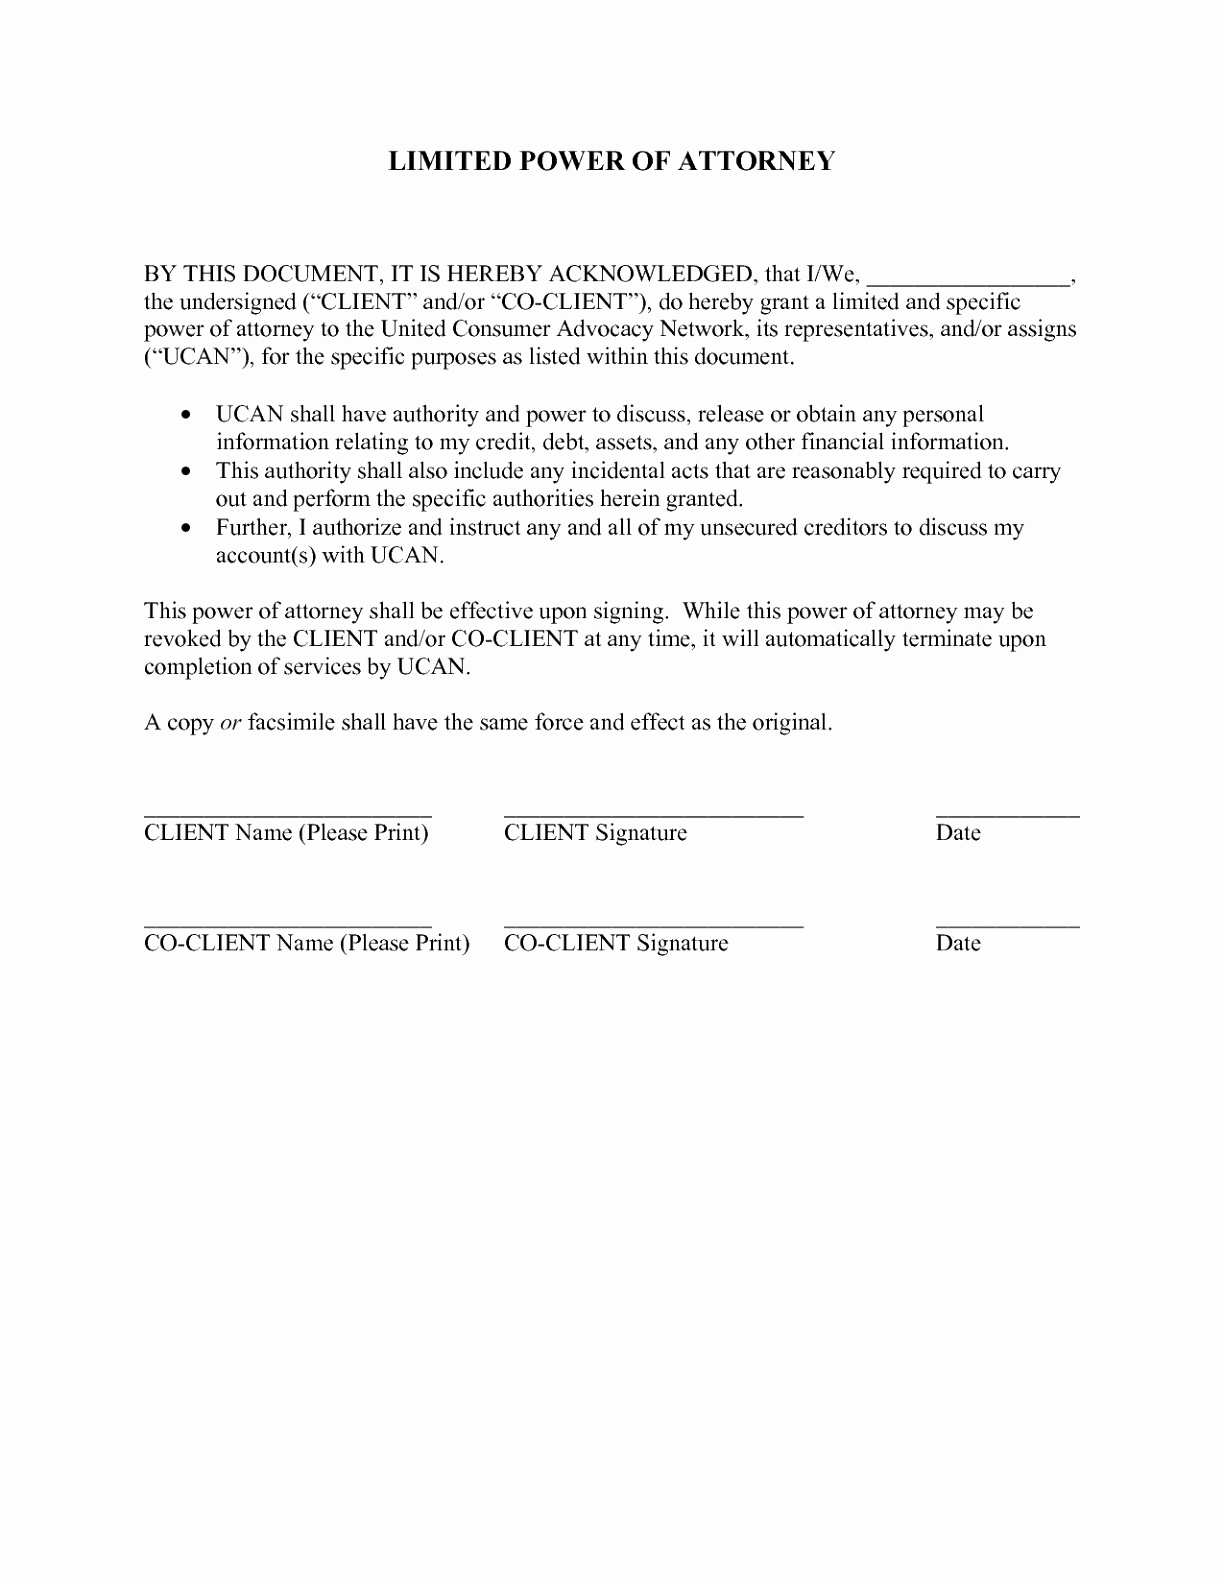 Real Estate Power Of Attorney Texas Luxury Power Attorney Form Free Printable New Special Power Attorney